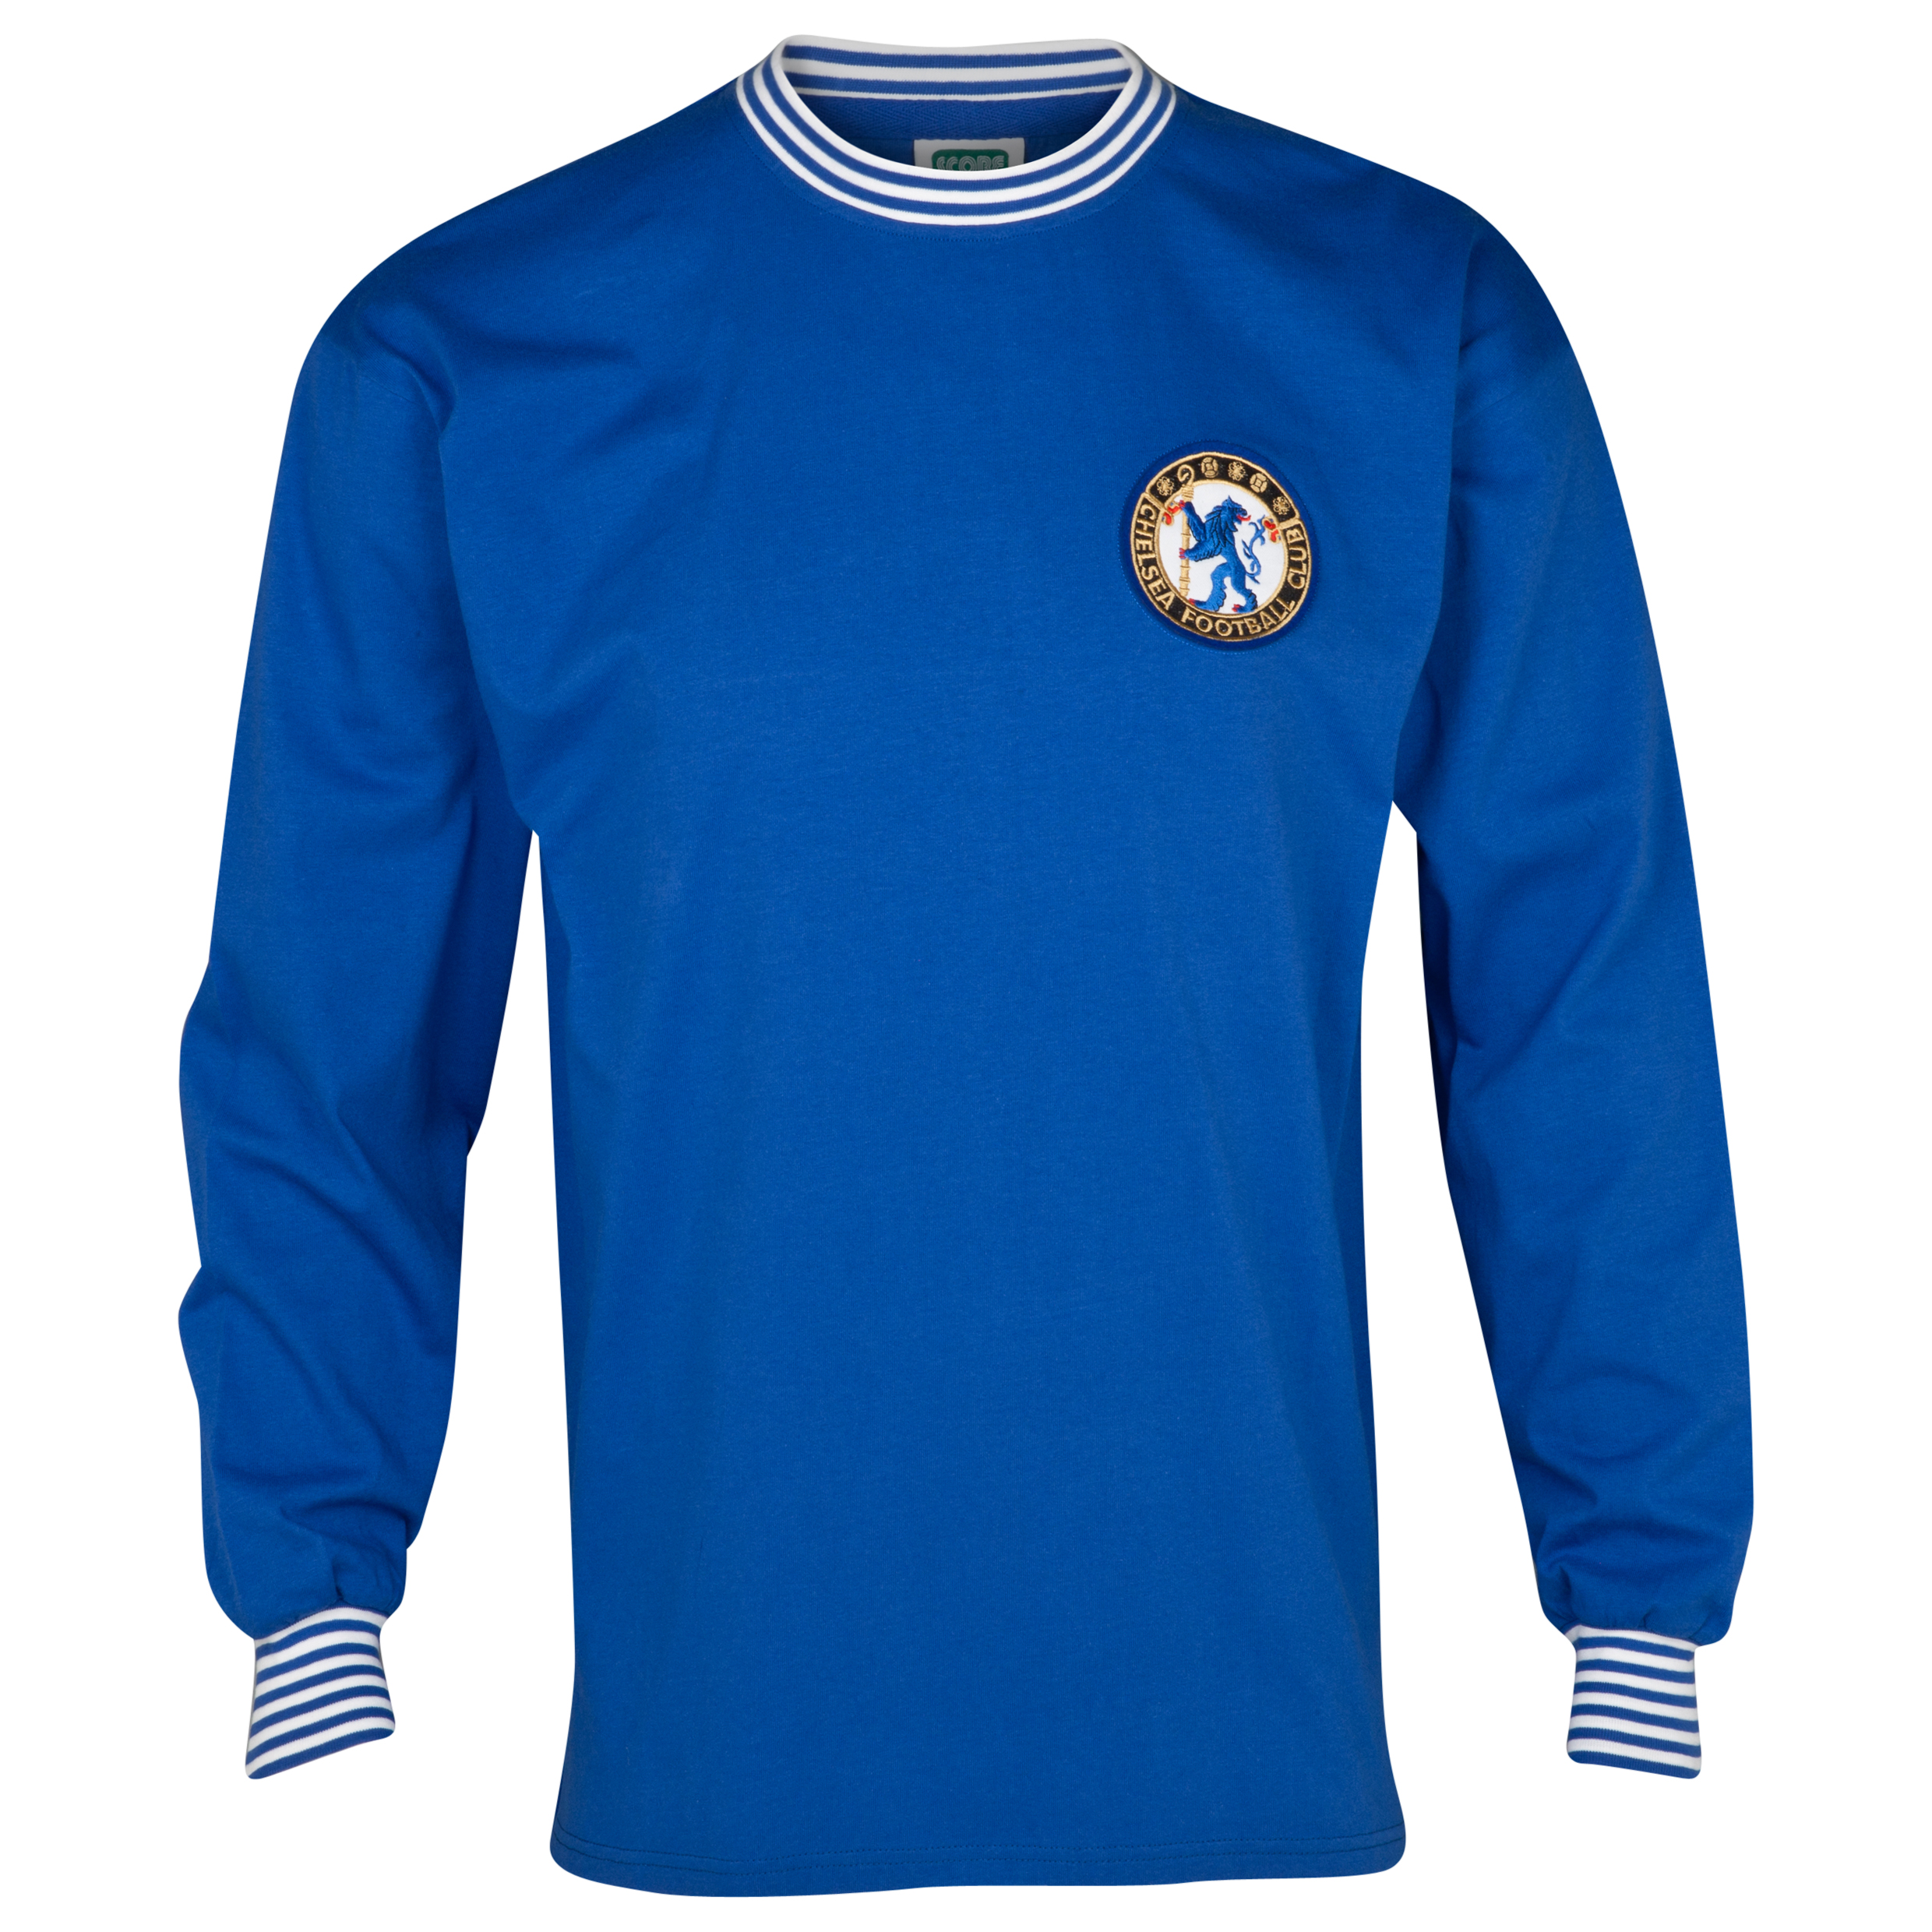 Chelsea 1963 Long Sleeved shirt